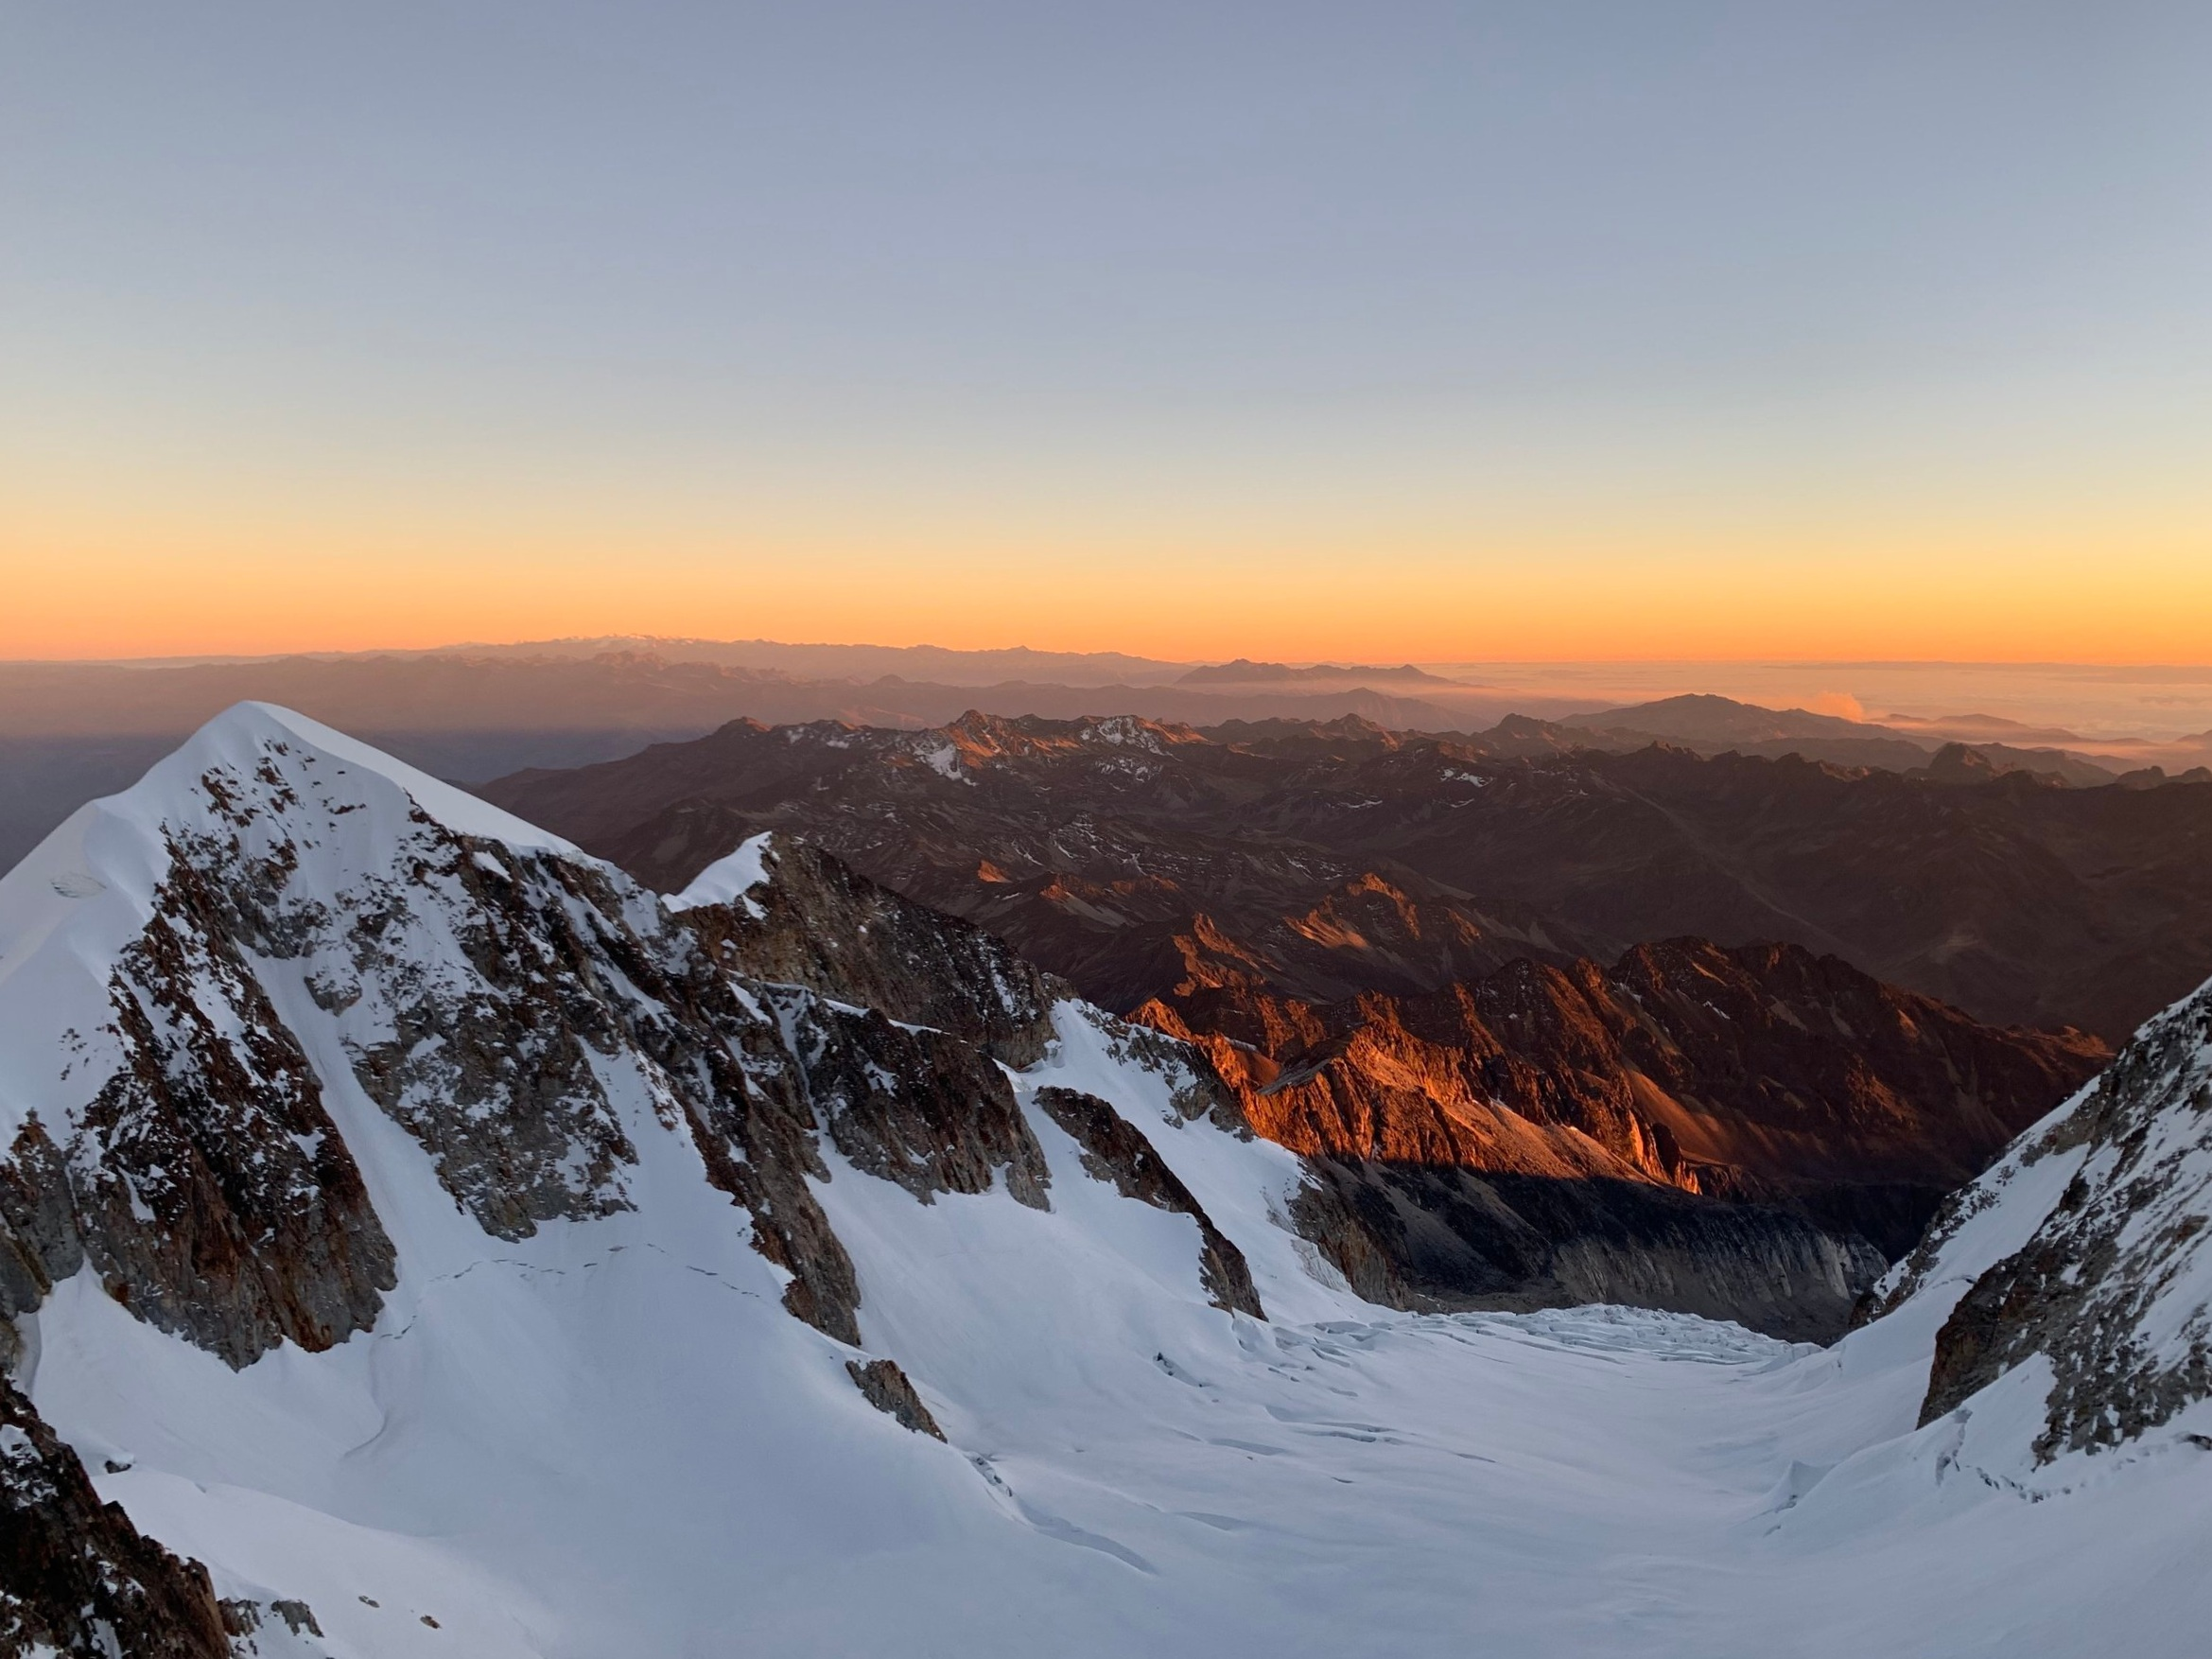 Daybreak on top of the headwall